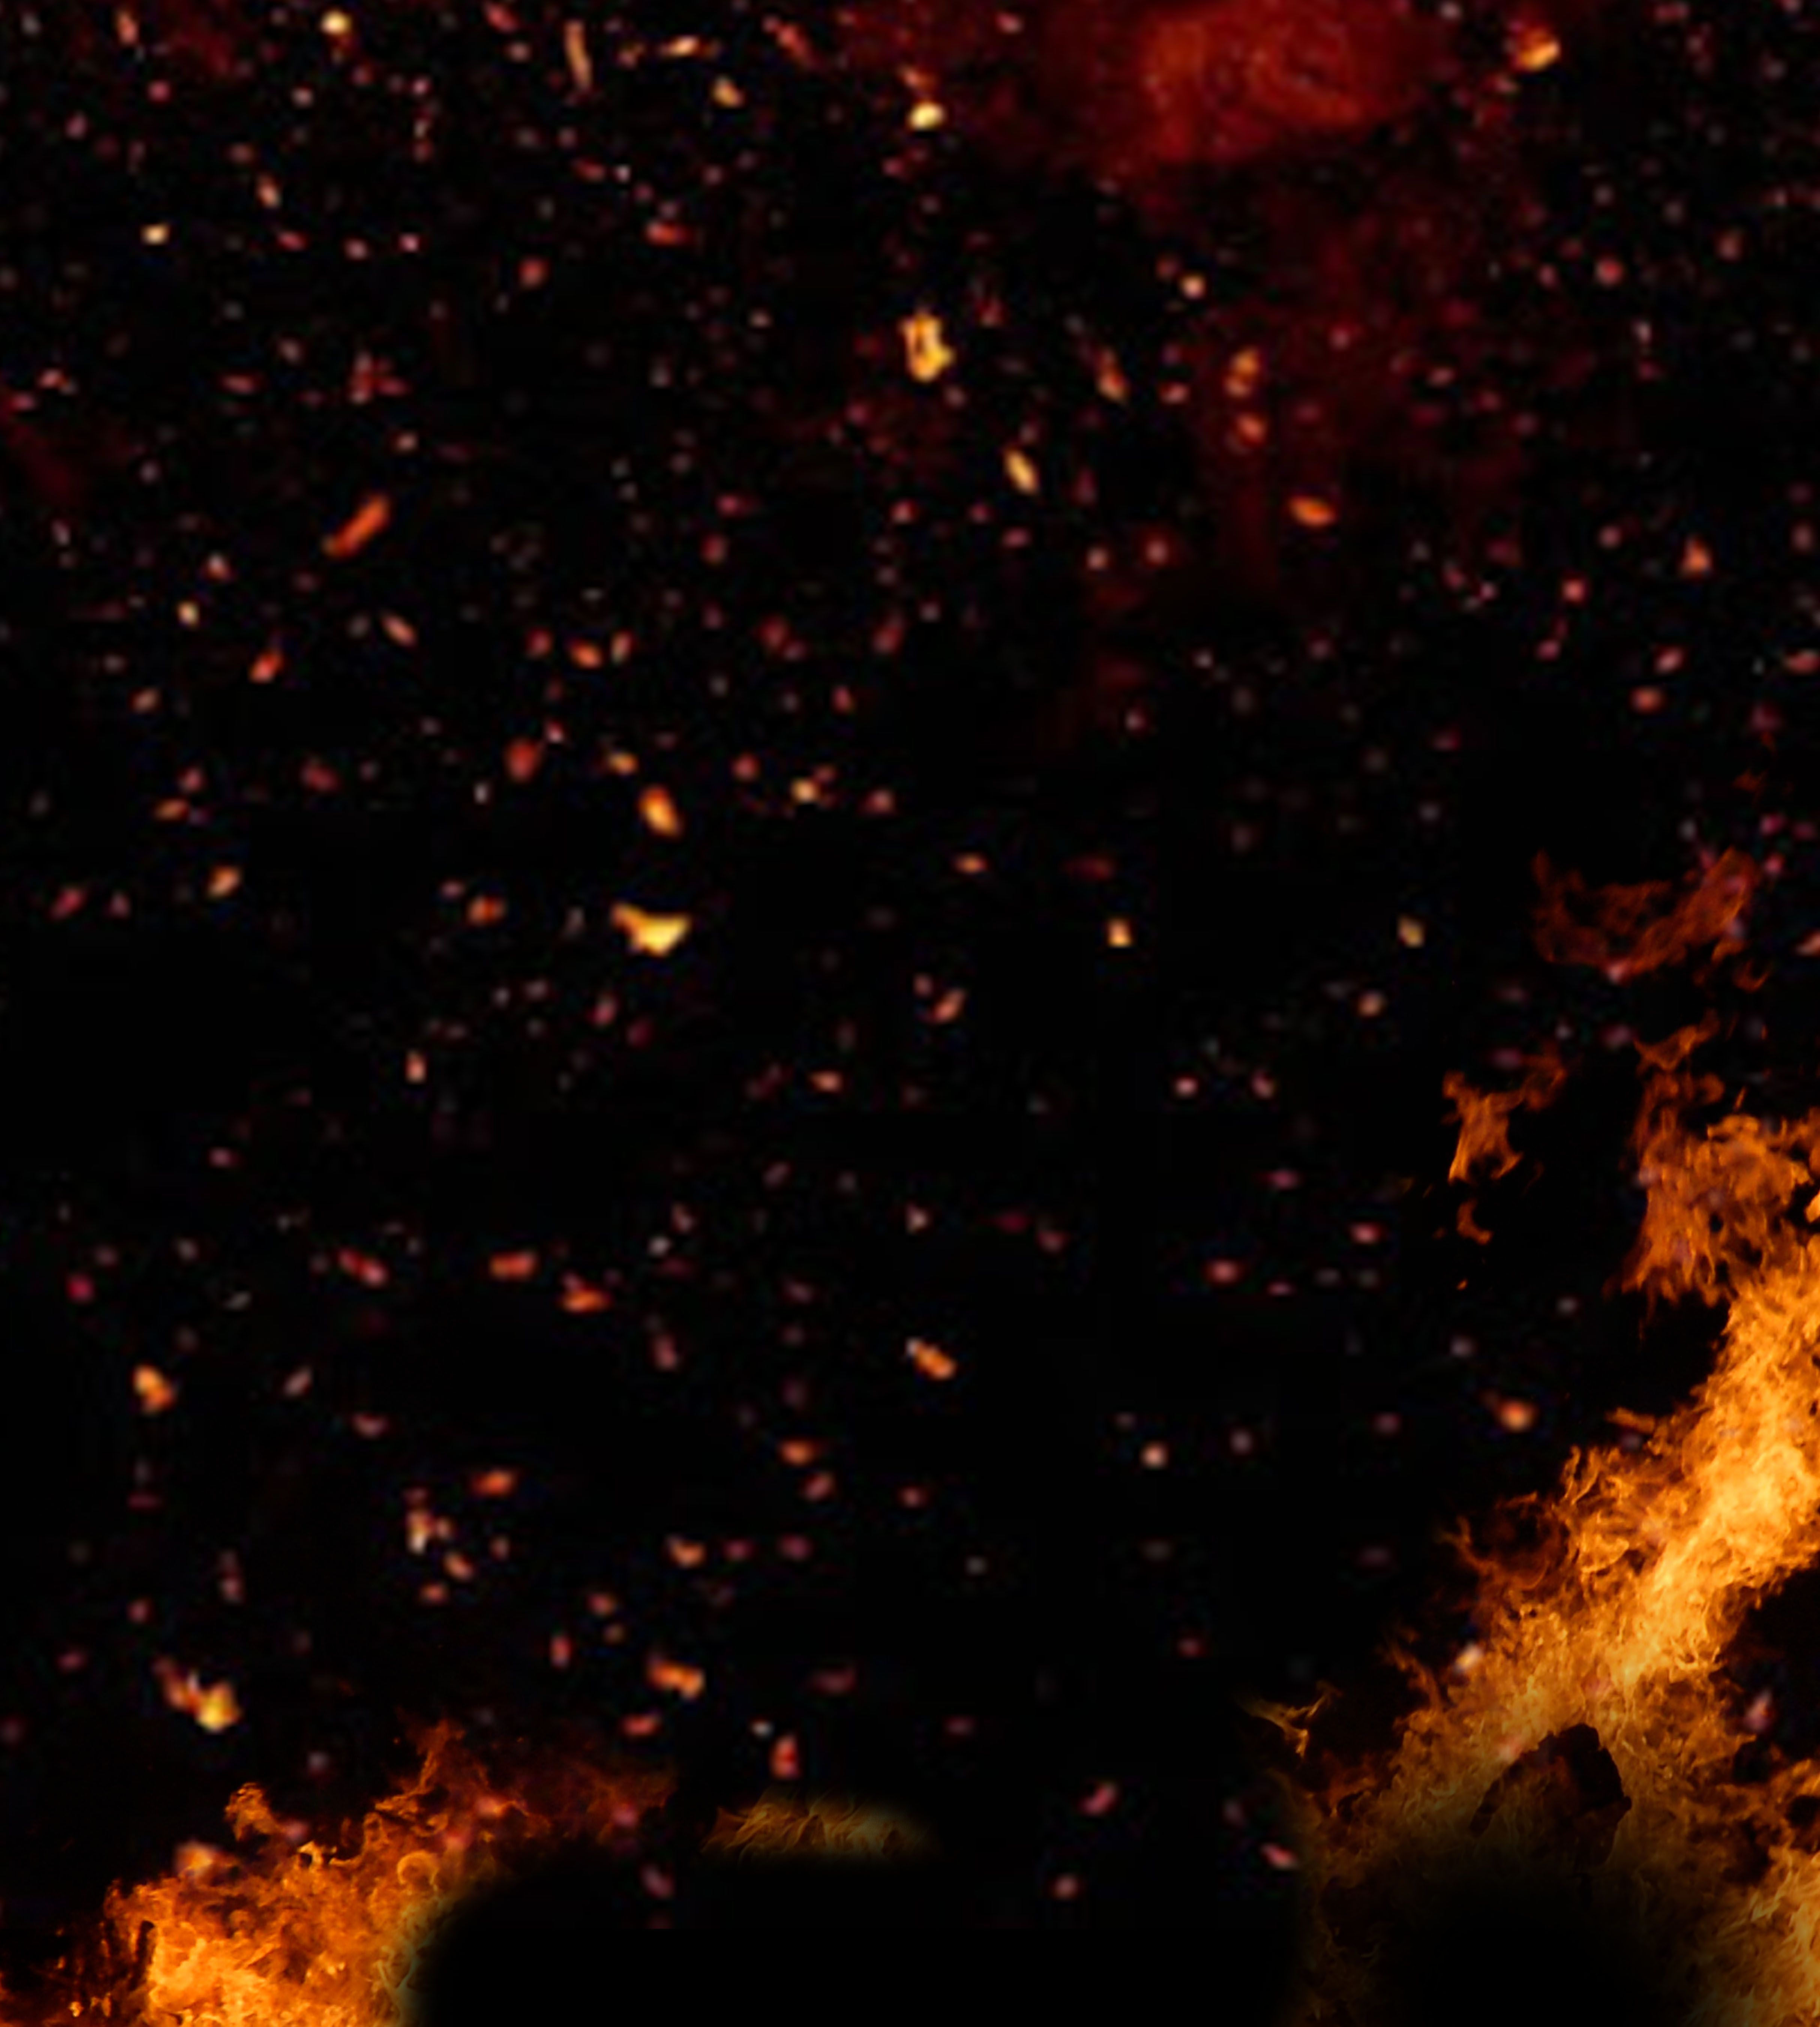 Fire Png Overlay Image Download Latest Fire Png Download 2018 Light Background Images Photography Studio Background Best Background Images